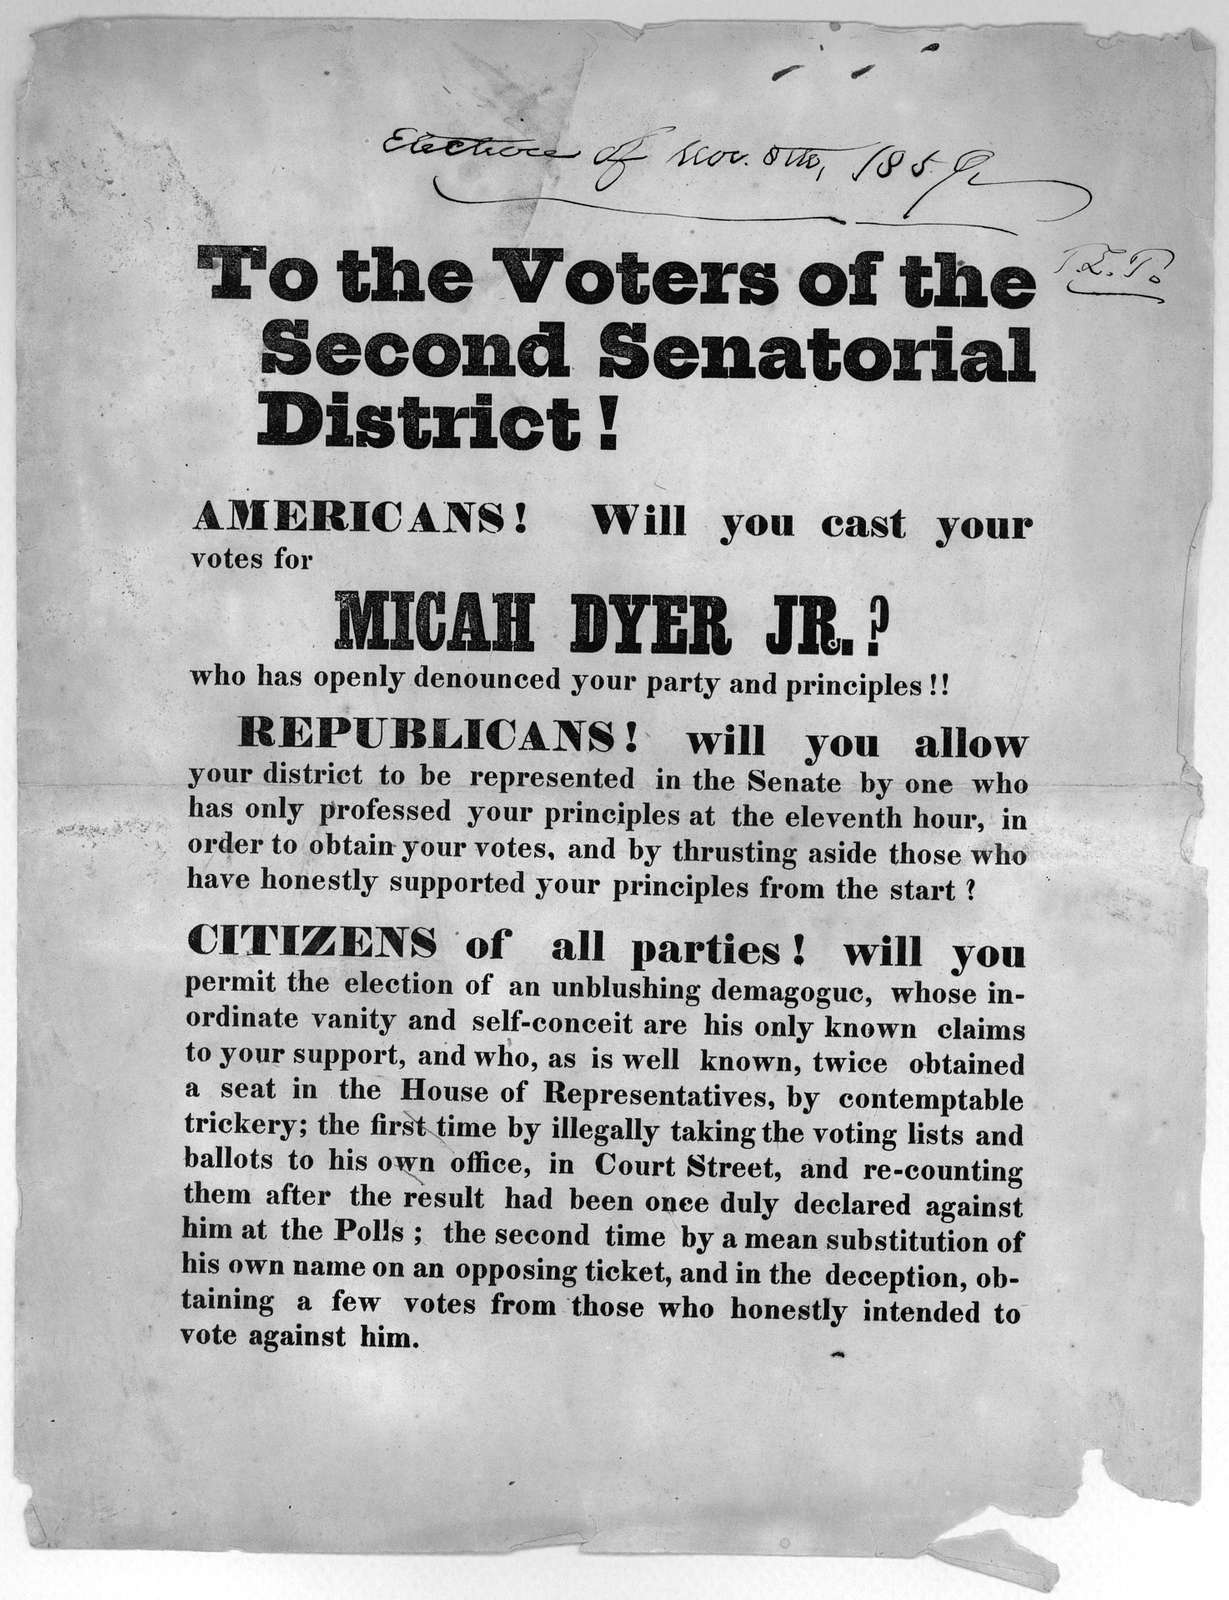 To the voters of the Second senatorial district! Americans! Will you cast your votes for Micah Dyer Jr? who has openly denounced your party and principles!! [1859].